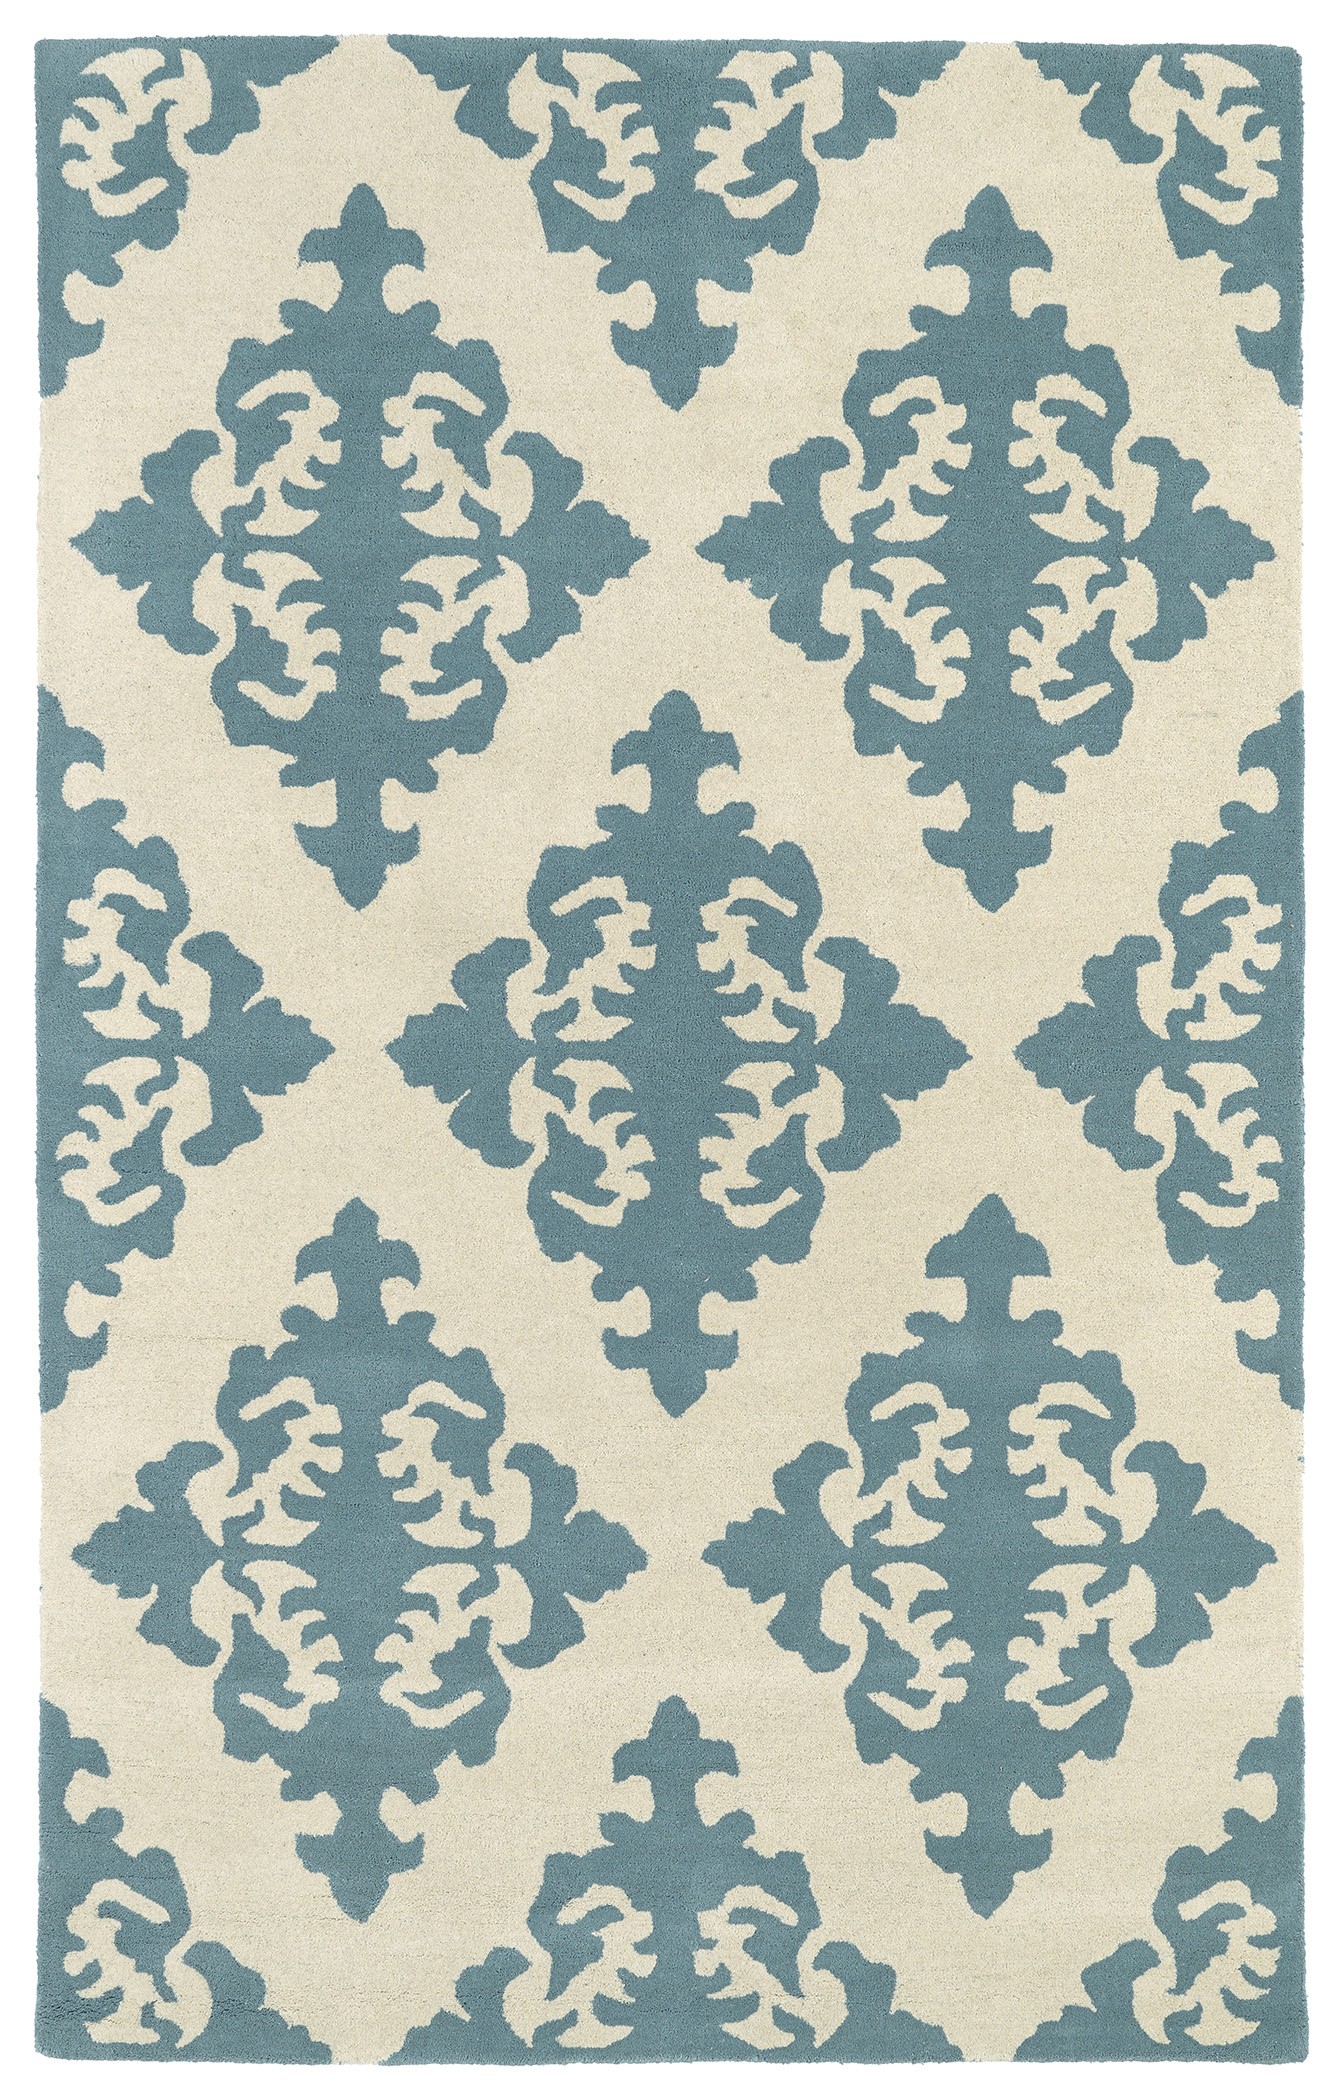 Kaleen Evolution EVL05 56 Spa Rug